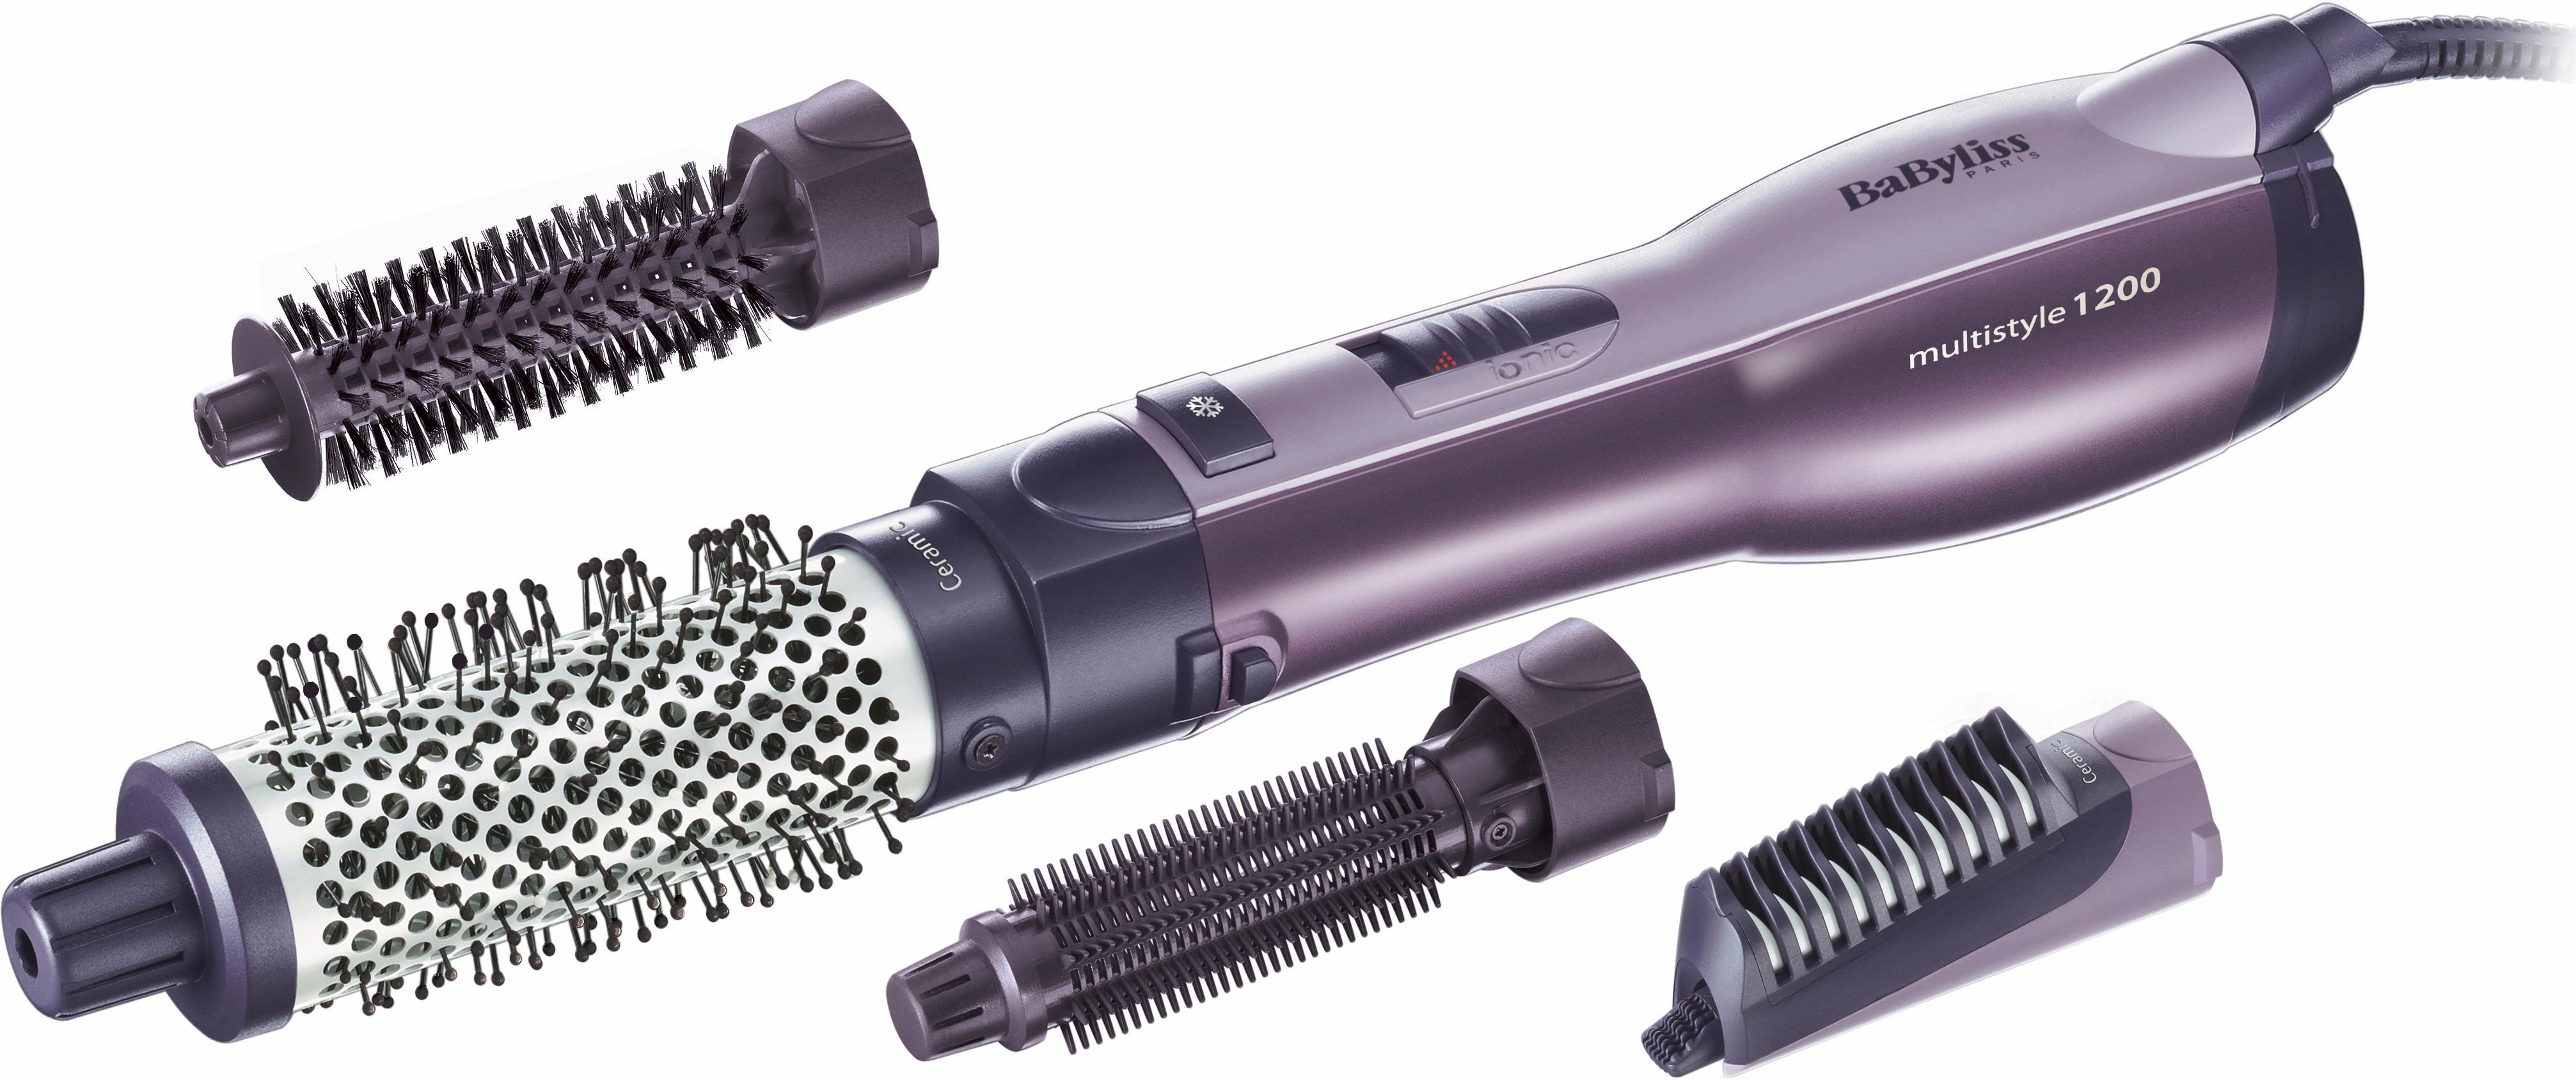 BaByliss Warmluftbürste Multistyle AS121E, Trocknen & Stylen 2 in 1